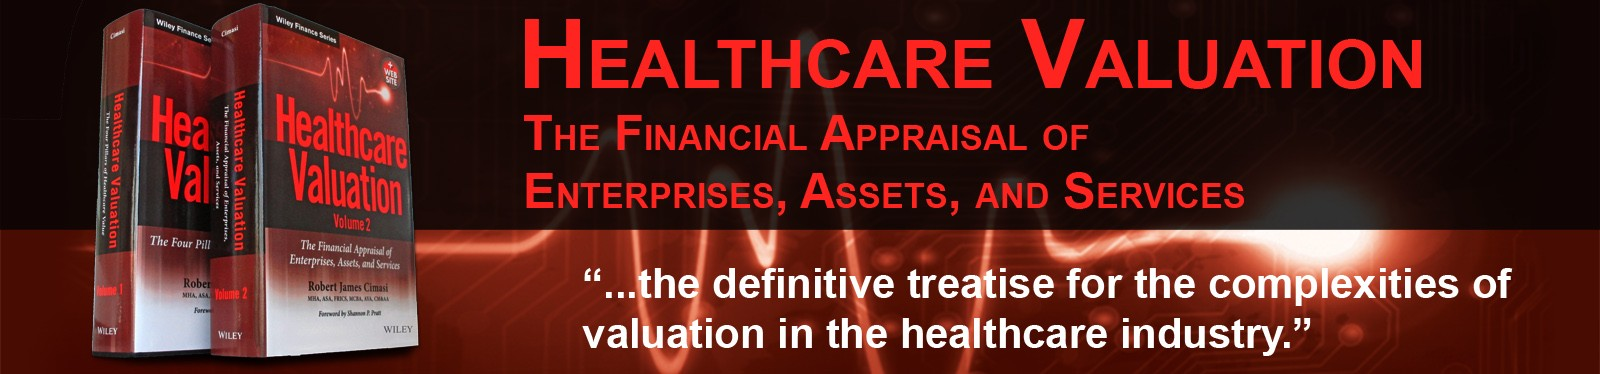 Healthcare Valuation Banner